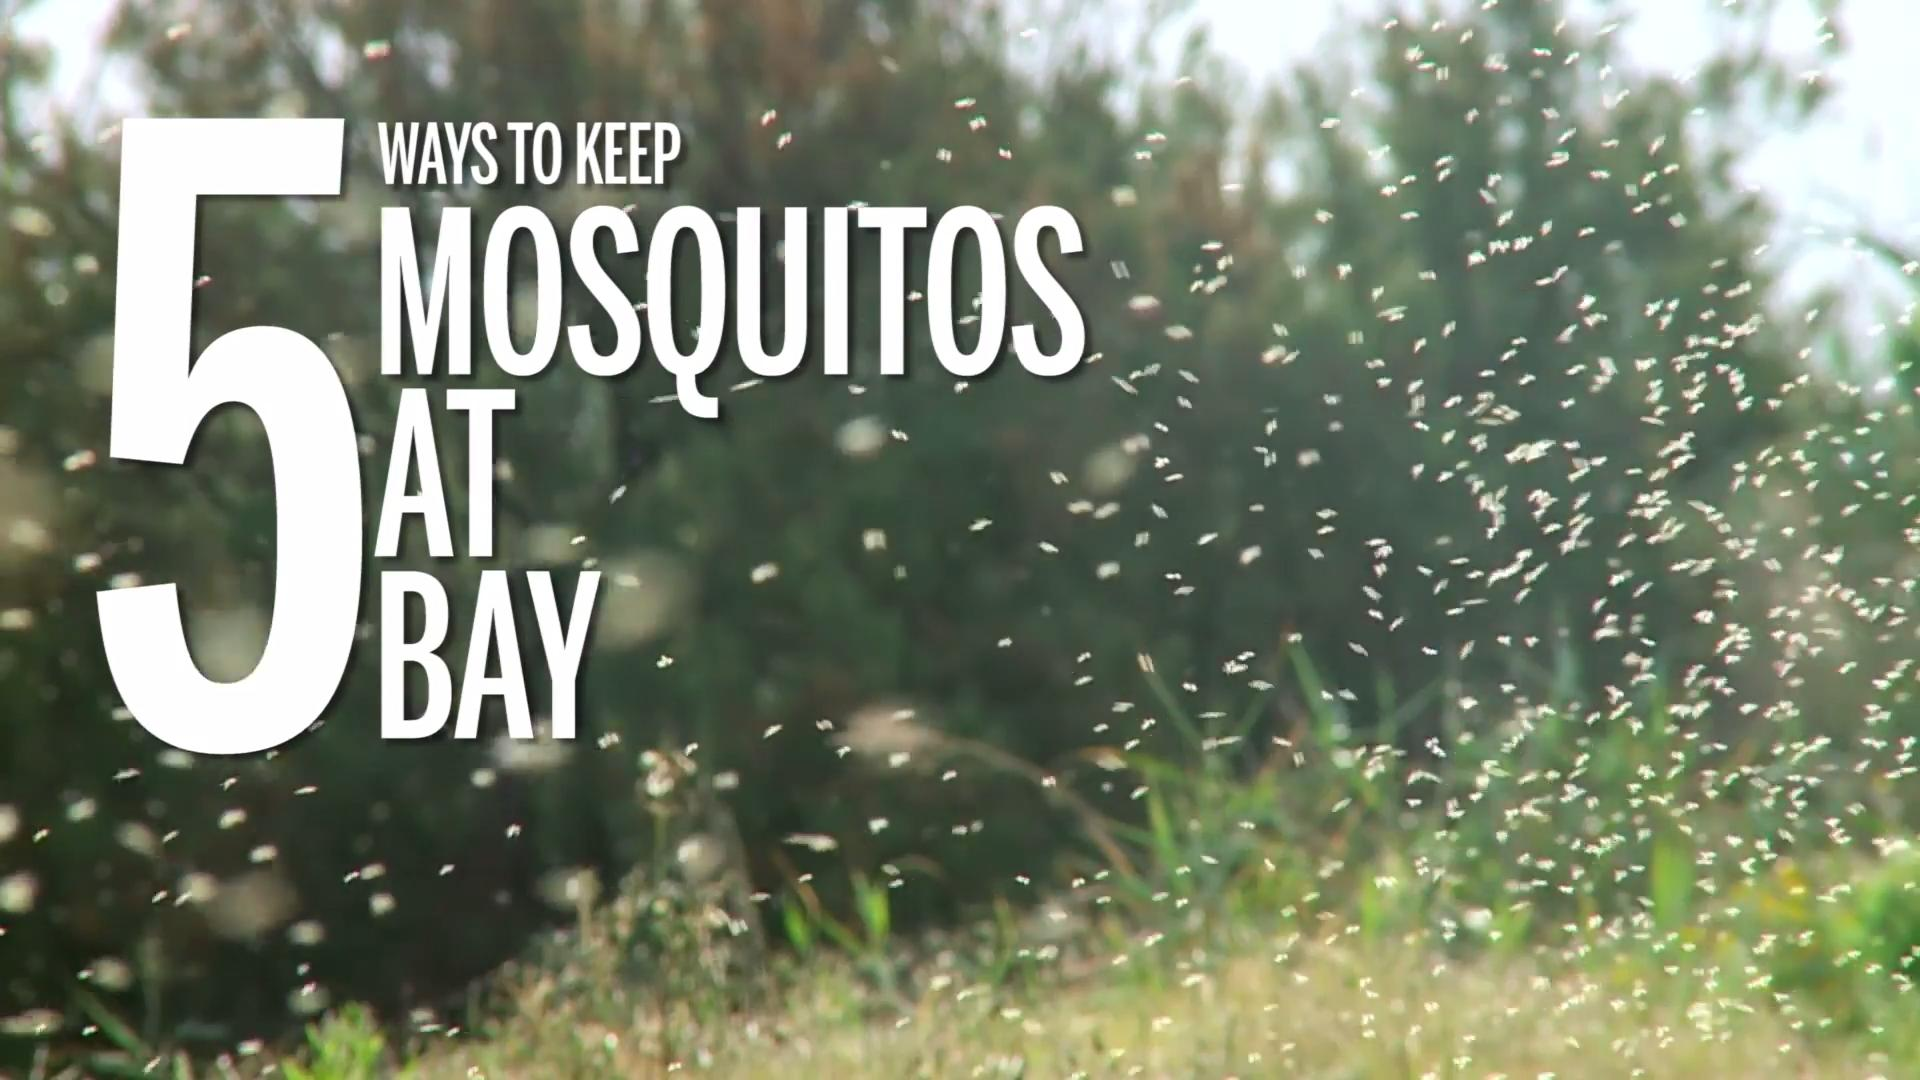 Chikungunya Virus Is the Mosquito-Transmitted Disease You Probably Don't Know About—but Should